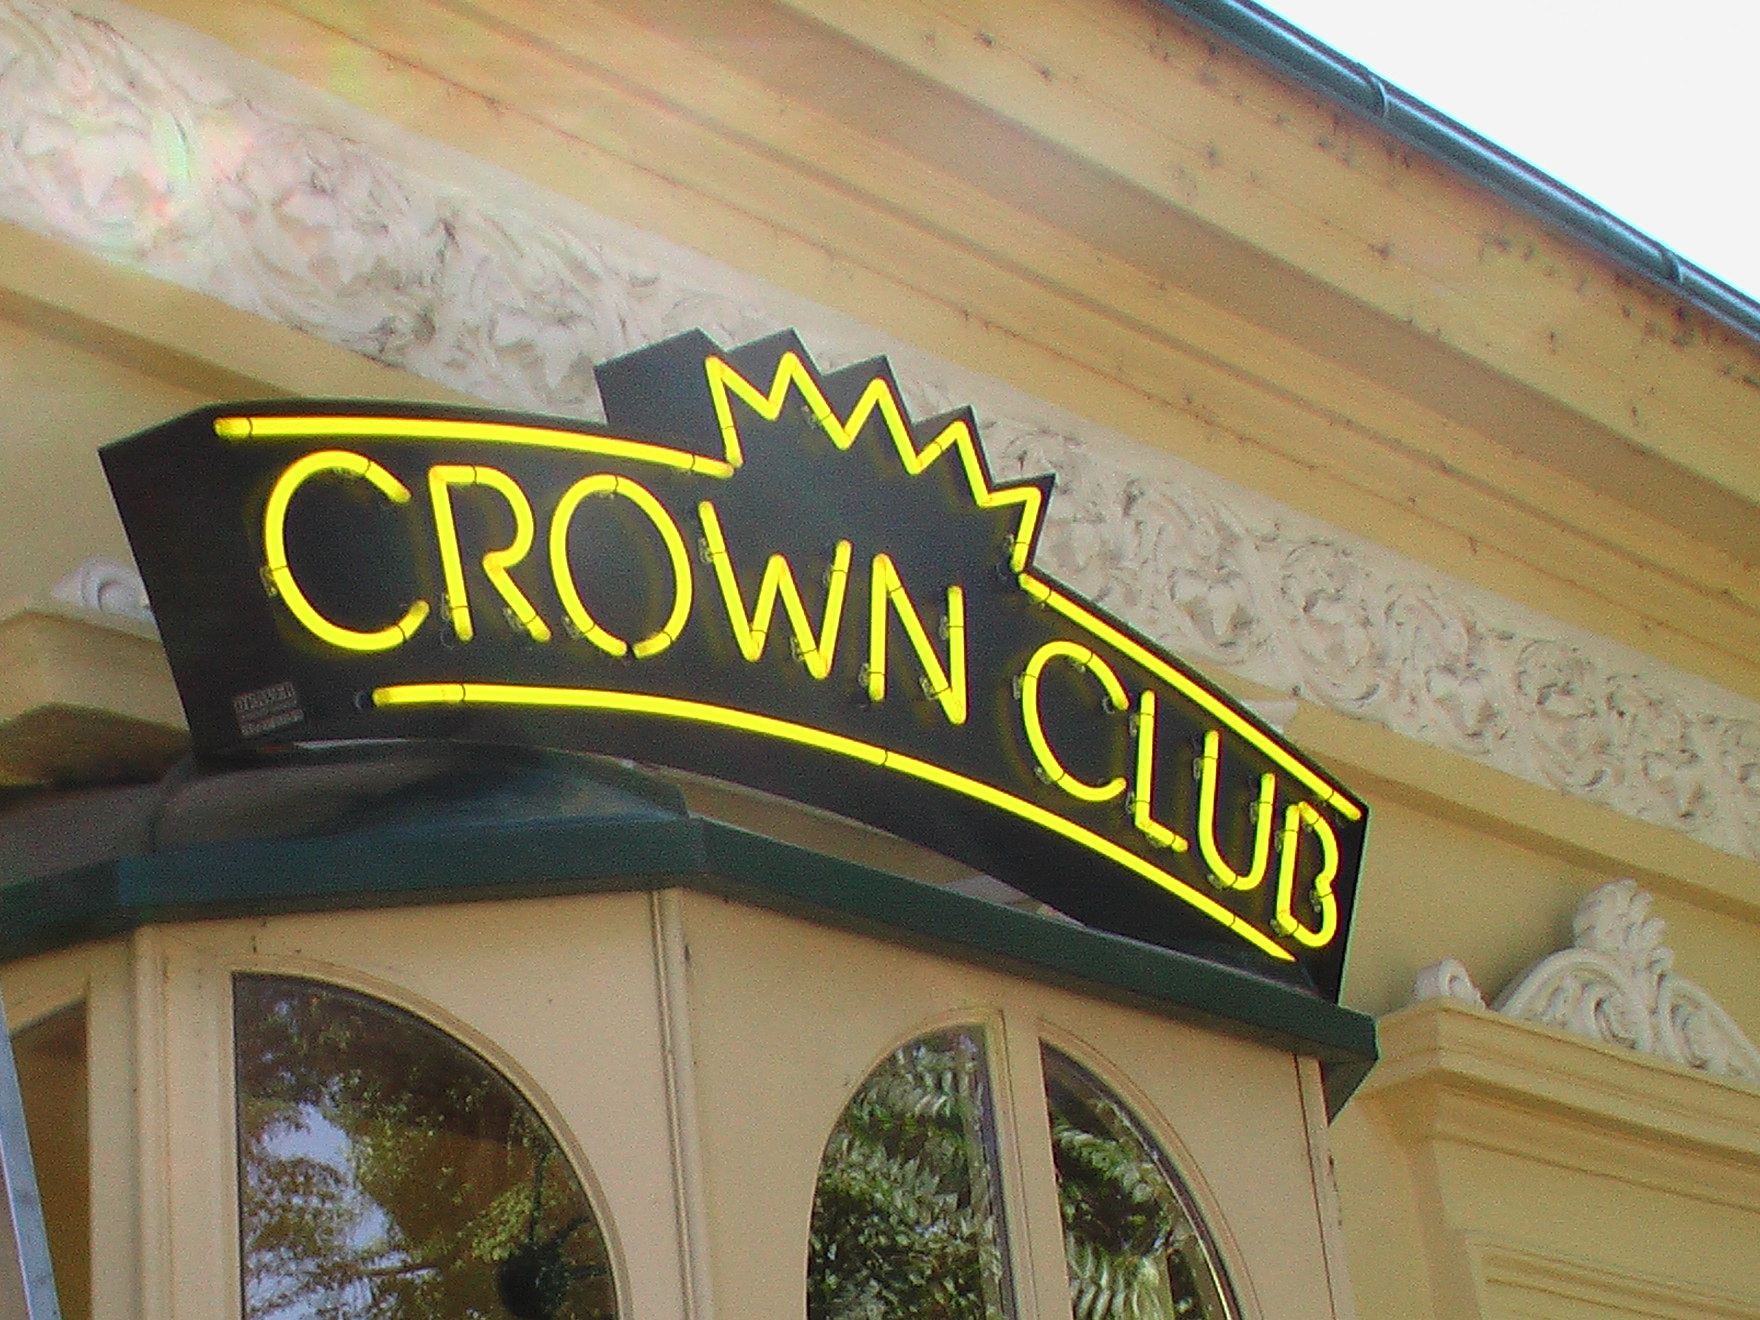 CROWN CLUB